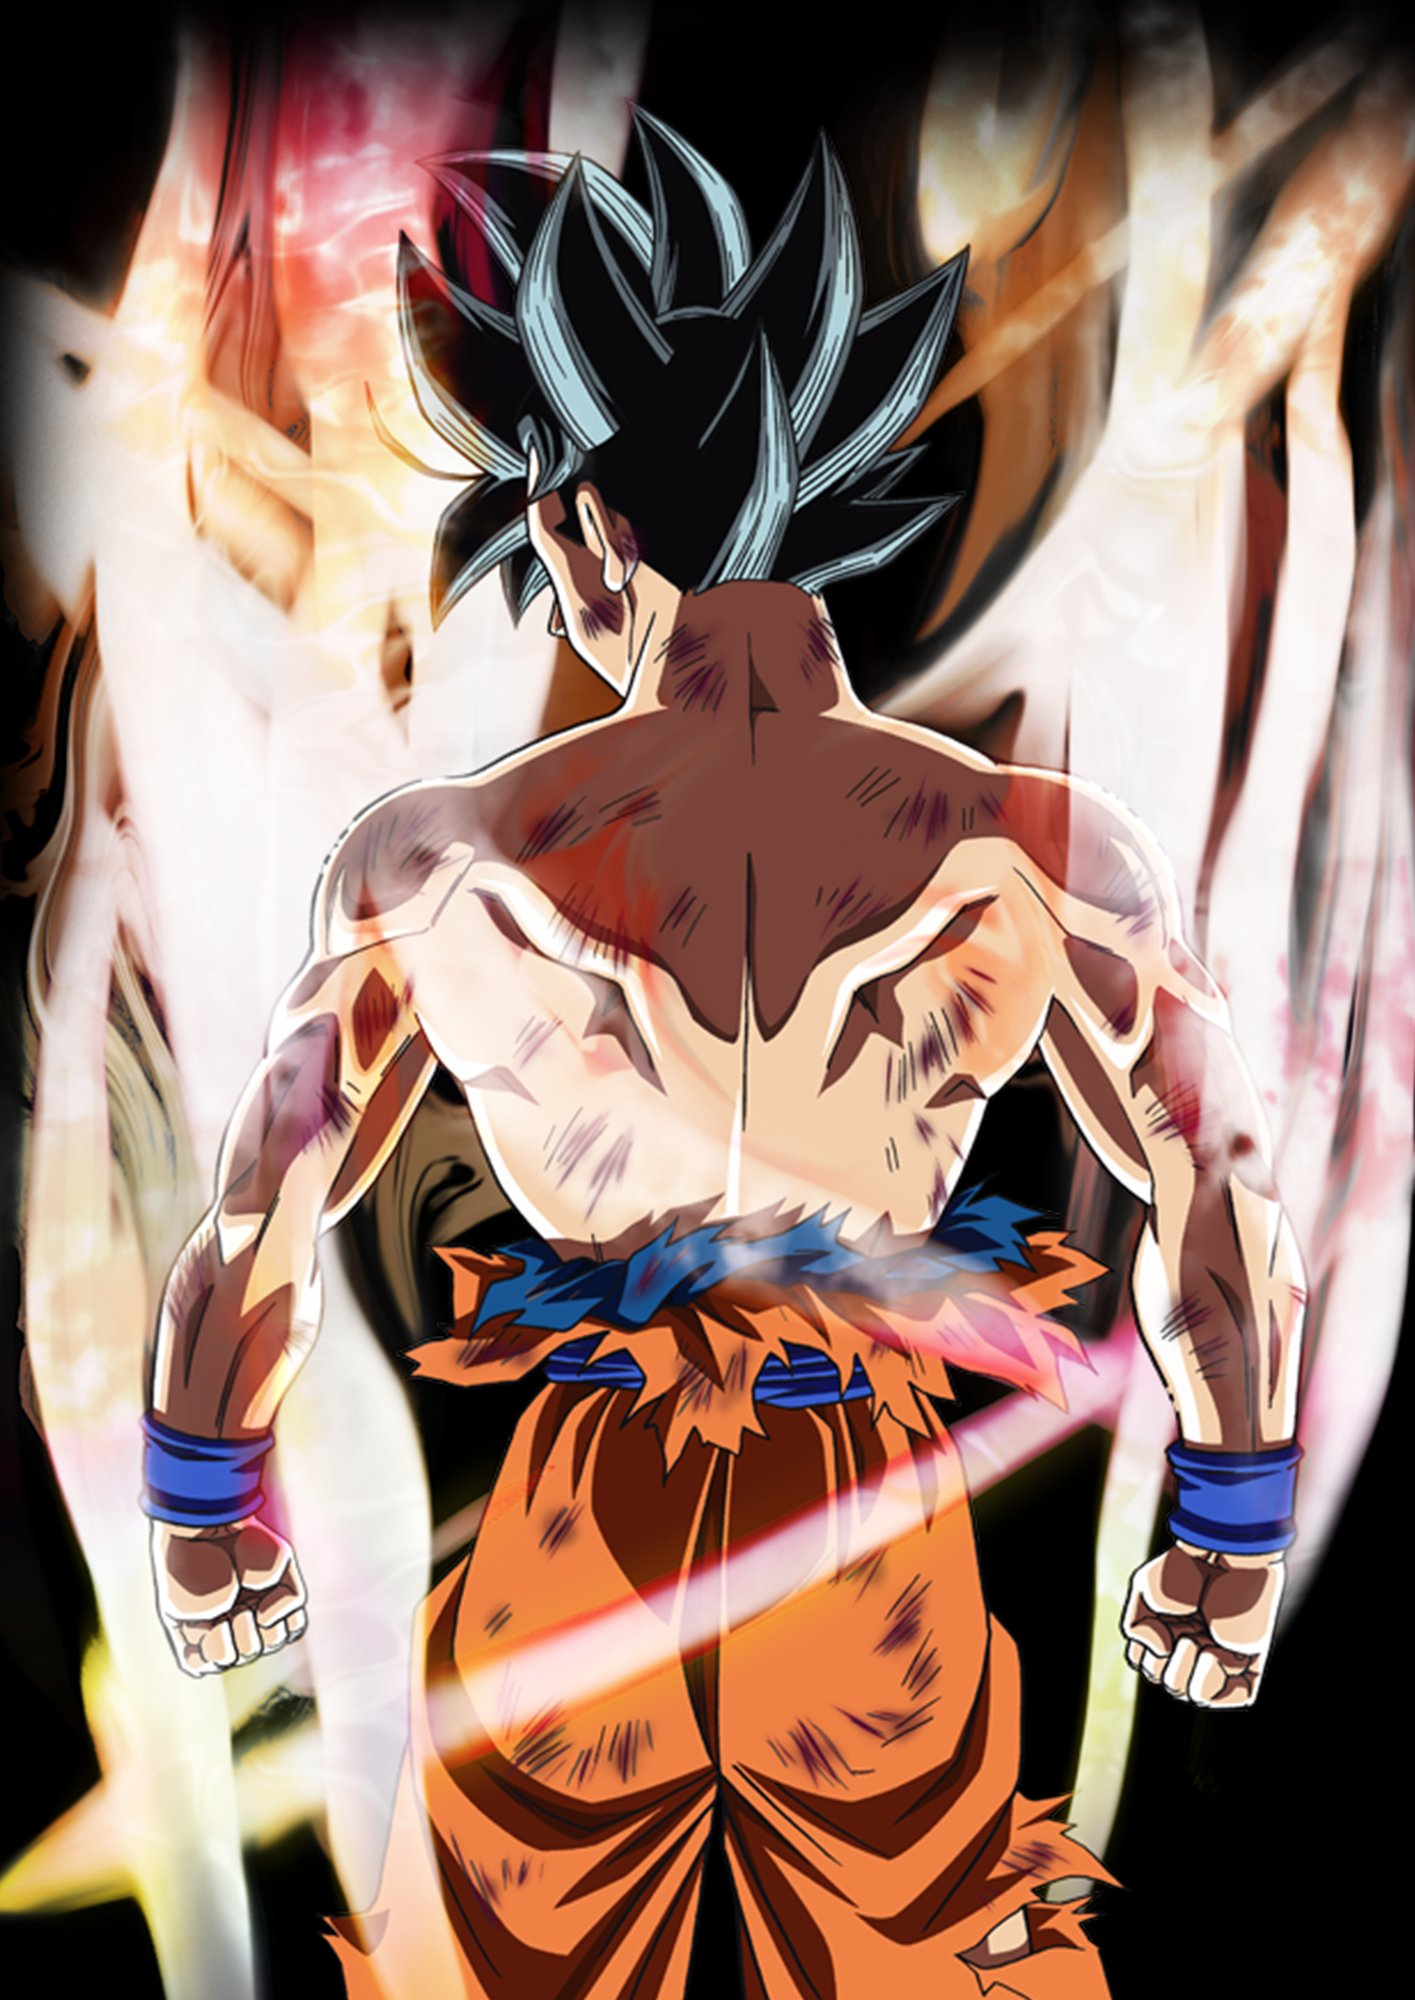 Can-I-get-this-as-a-1080p-with-Goku-on-the-right-side-please-HD-From-Gallsource-wallpaper-wp3603860